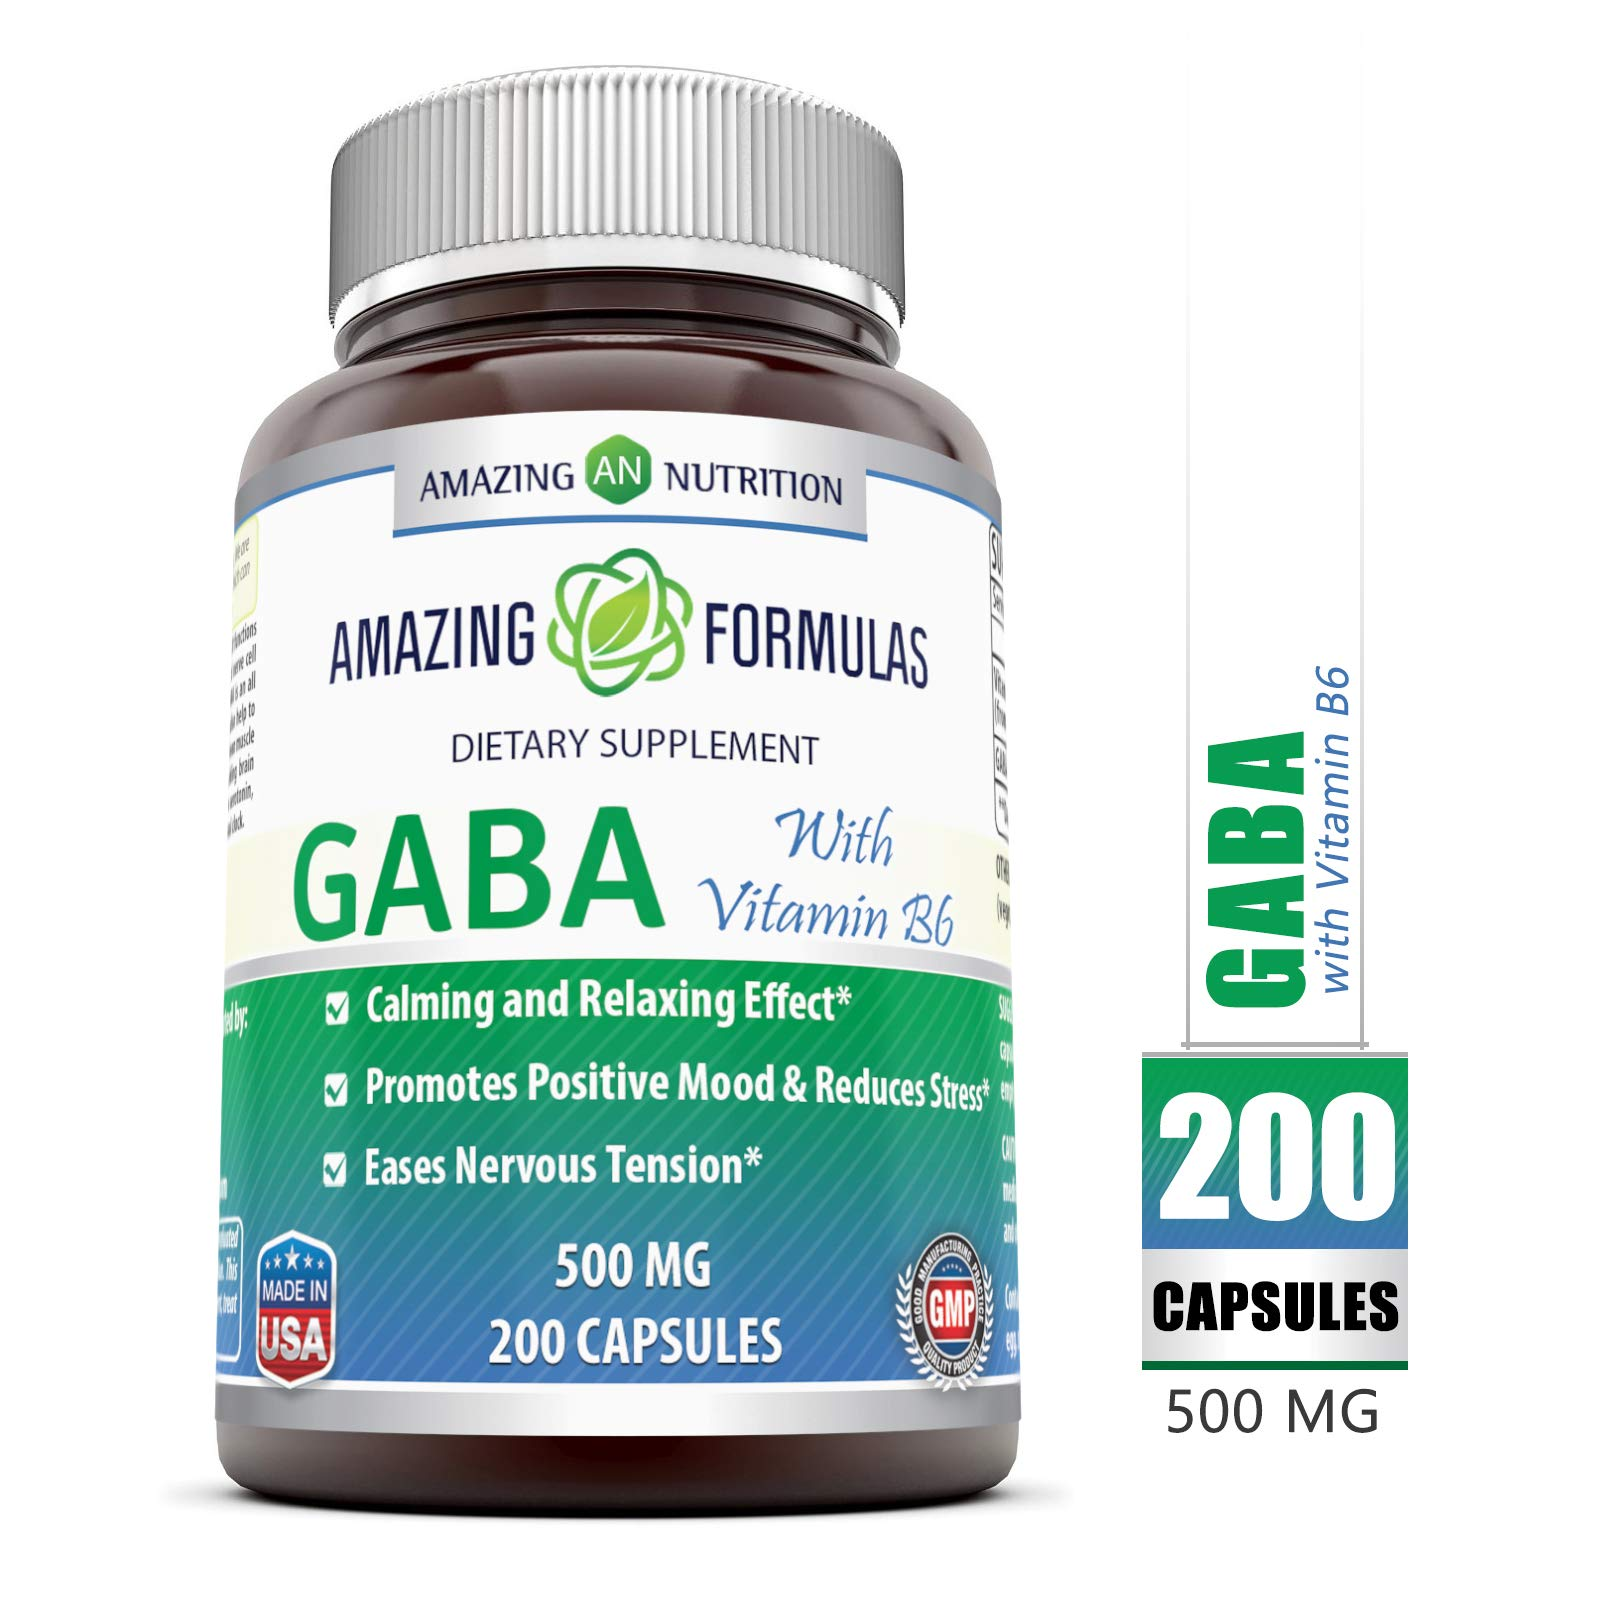 Amazing Formulas GABA (Gamma Aminobutyric Acid) with Vitamin B6 500mg 200 Capsules - Natural Calming Effect - with Vitamin B-6 Promotes Relaxation - Eases Nervous Tension* by Amazing Nutrition